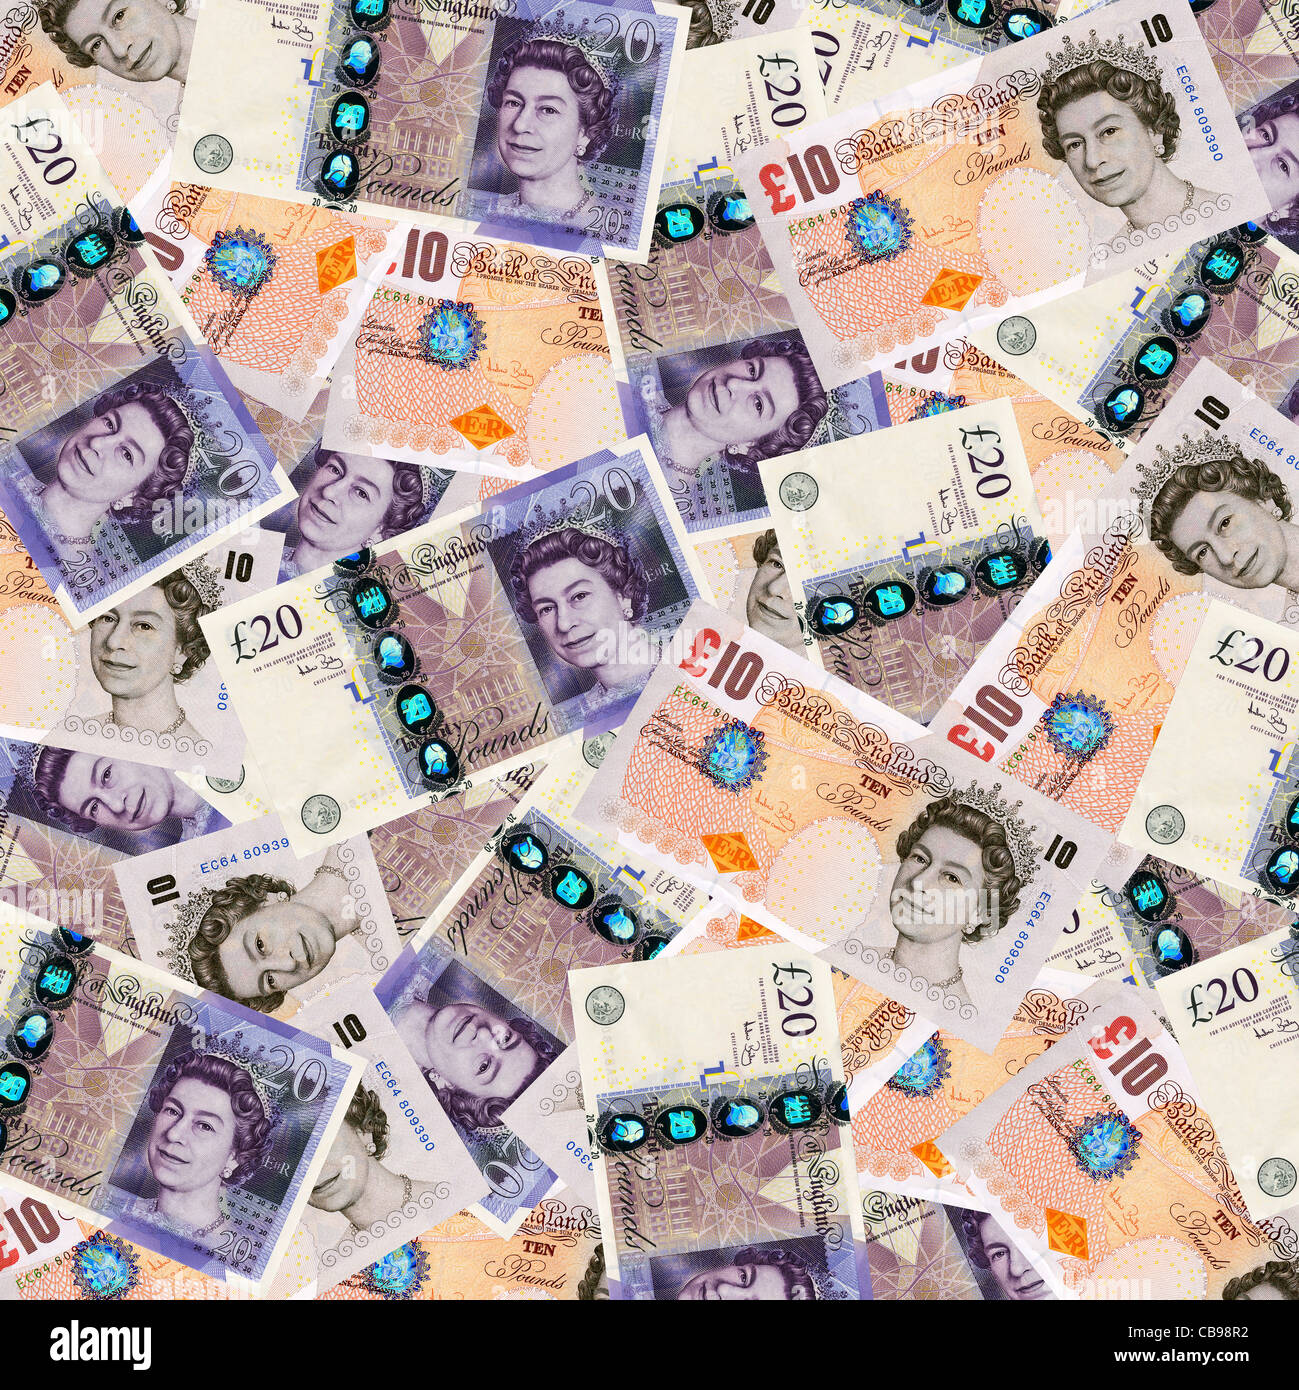 Money - ten and twenty pound notes sterling currency overhead view - Stock Image